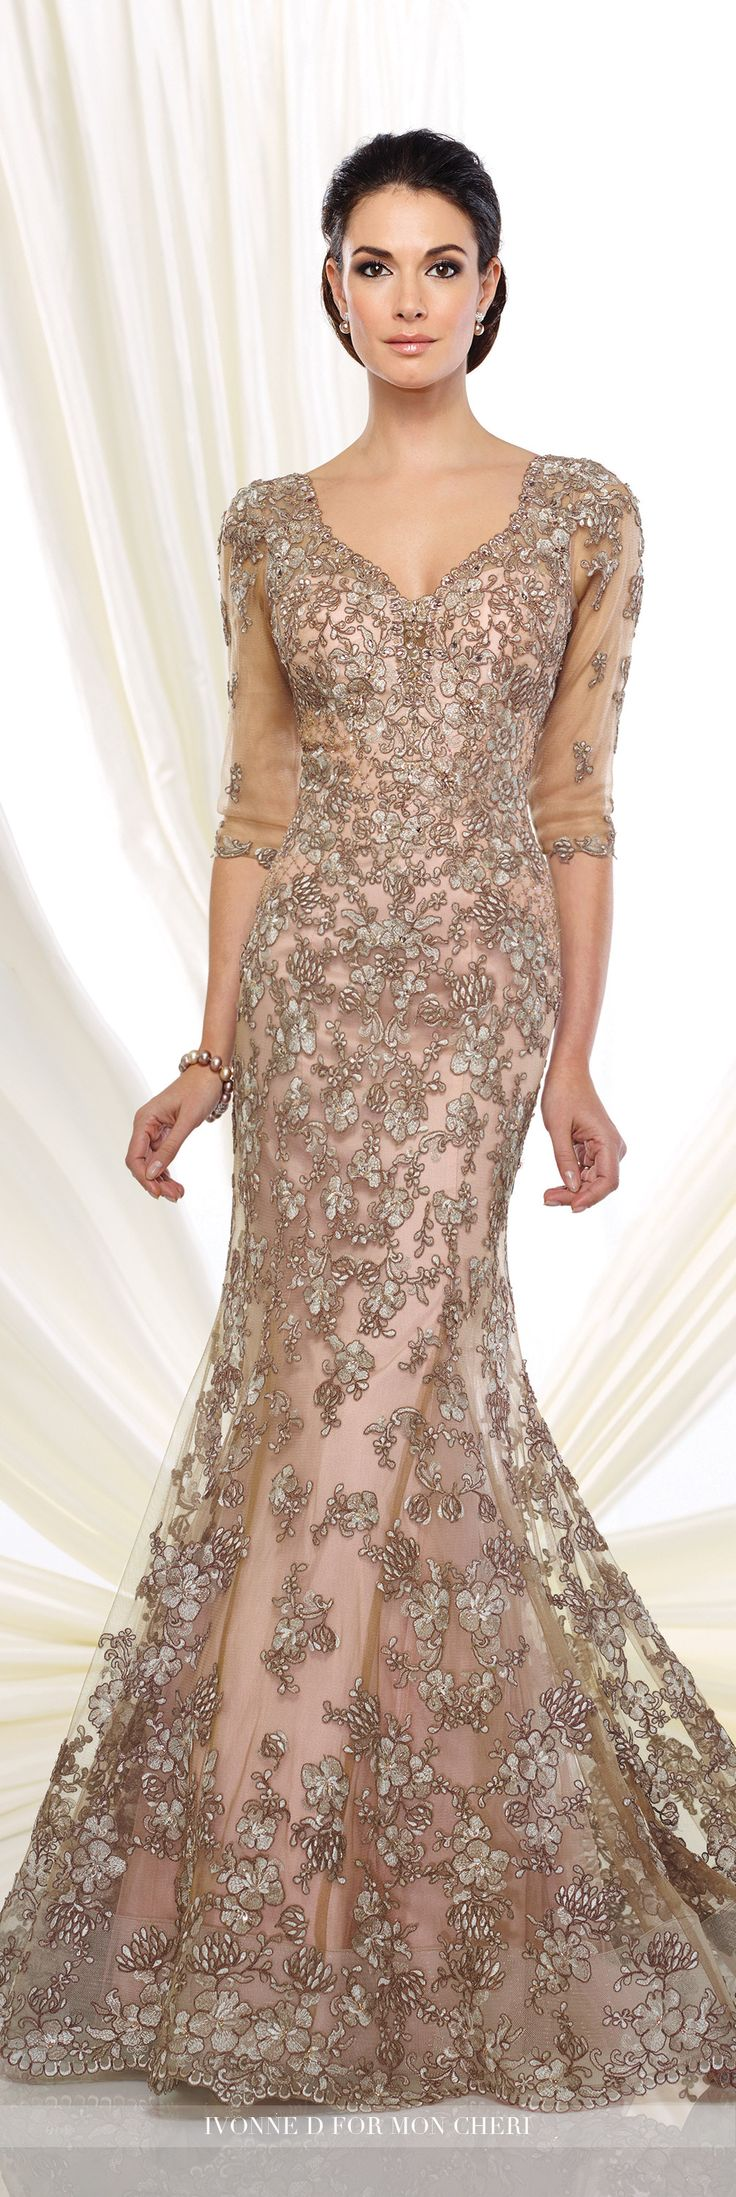 Ivonne D Exclusively for Mon Cheri - 216D52 - Tulle trumpet dress with hand-beaded and illusion lace three-quarter length sleeves, front and back curved V-necklines, sweetheart bodice, horsehair hemline, sweep train. Sizes: 4 - 20, 16W - 26W Taupe/Pink, Oyster